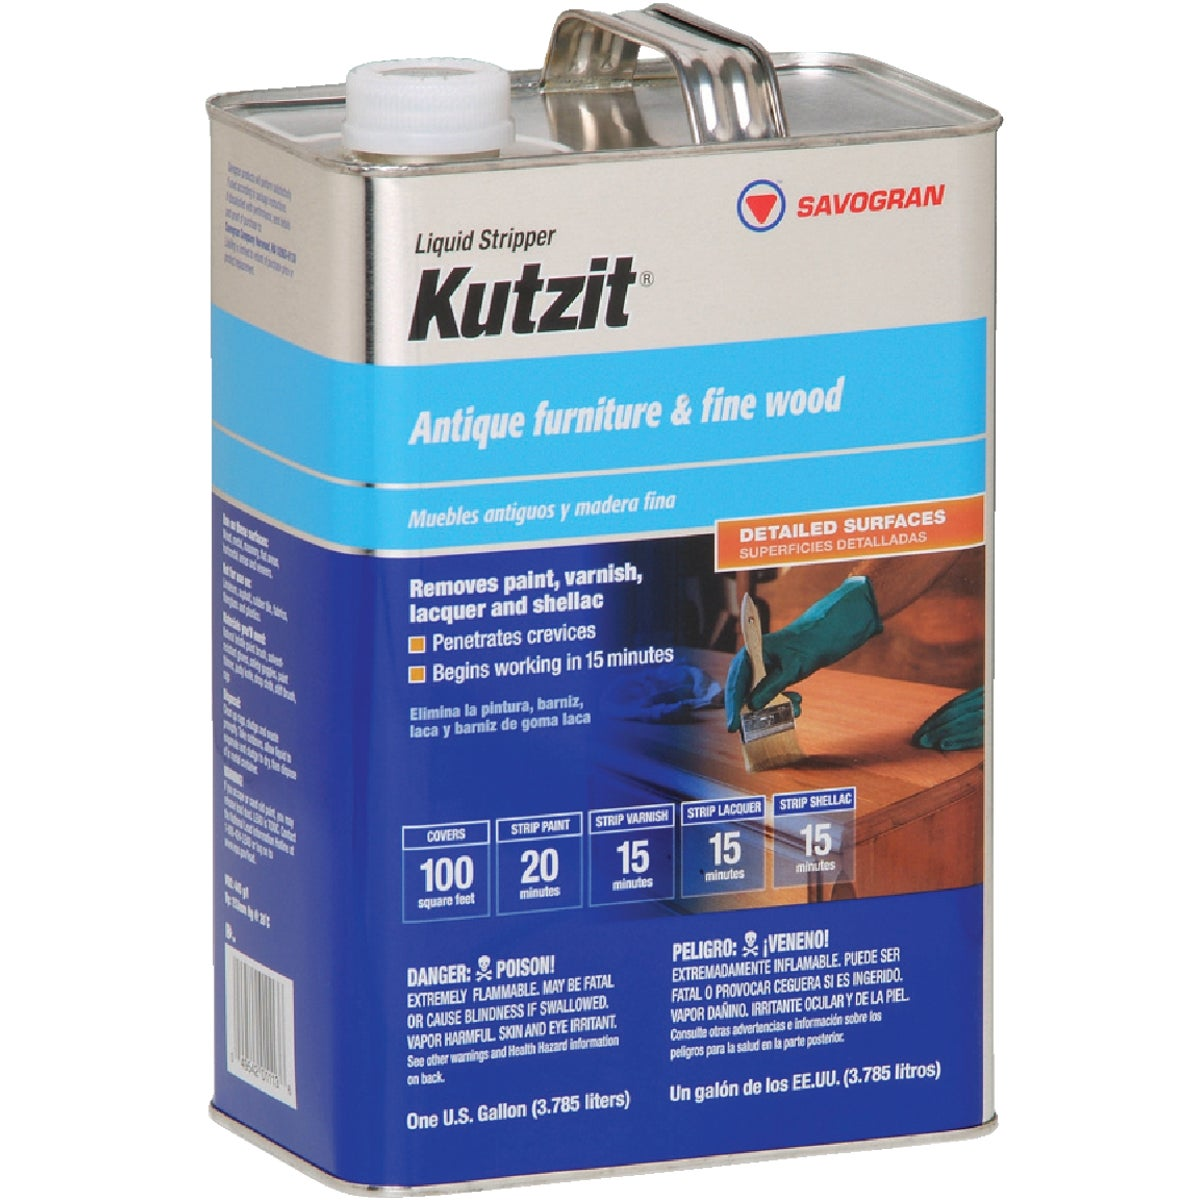 GAL KUTZIT REMOVER - 1113 by Savogran Company